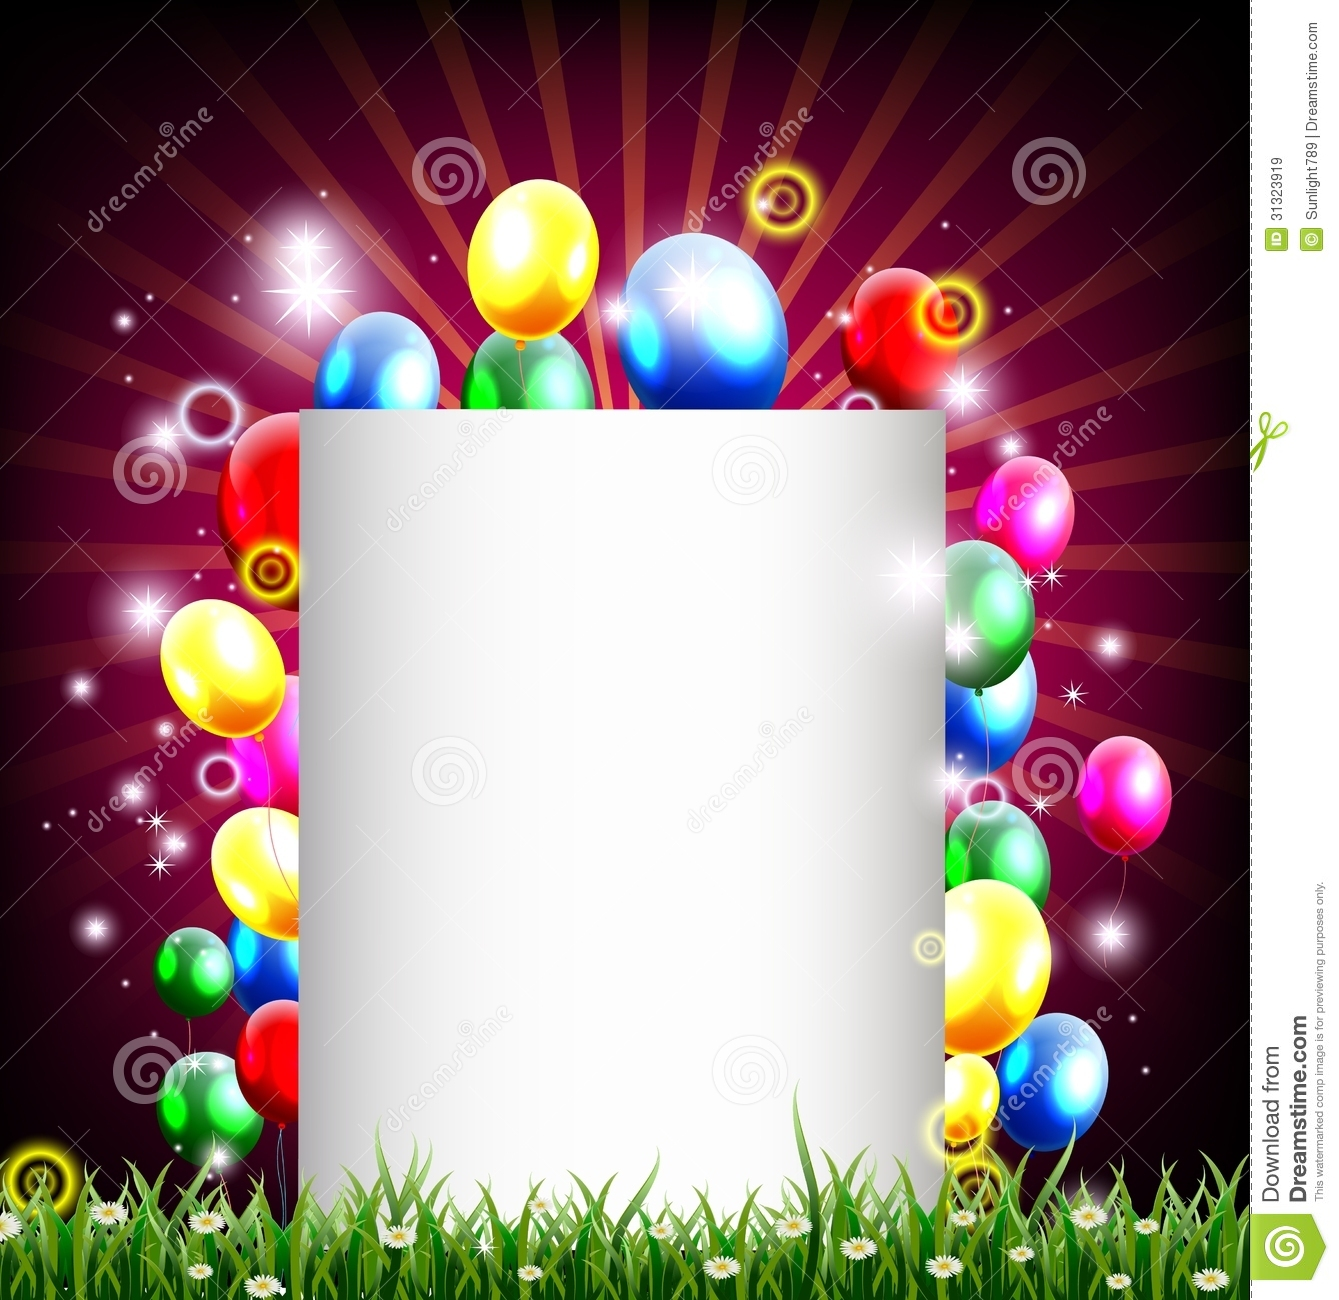 Birthday Background With Place For Text And Grass ...